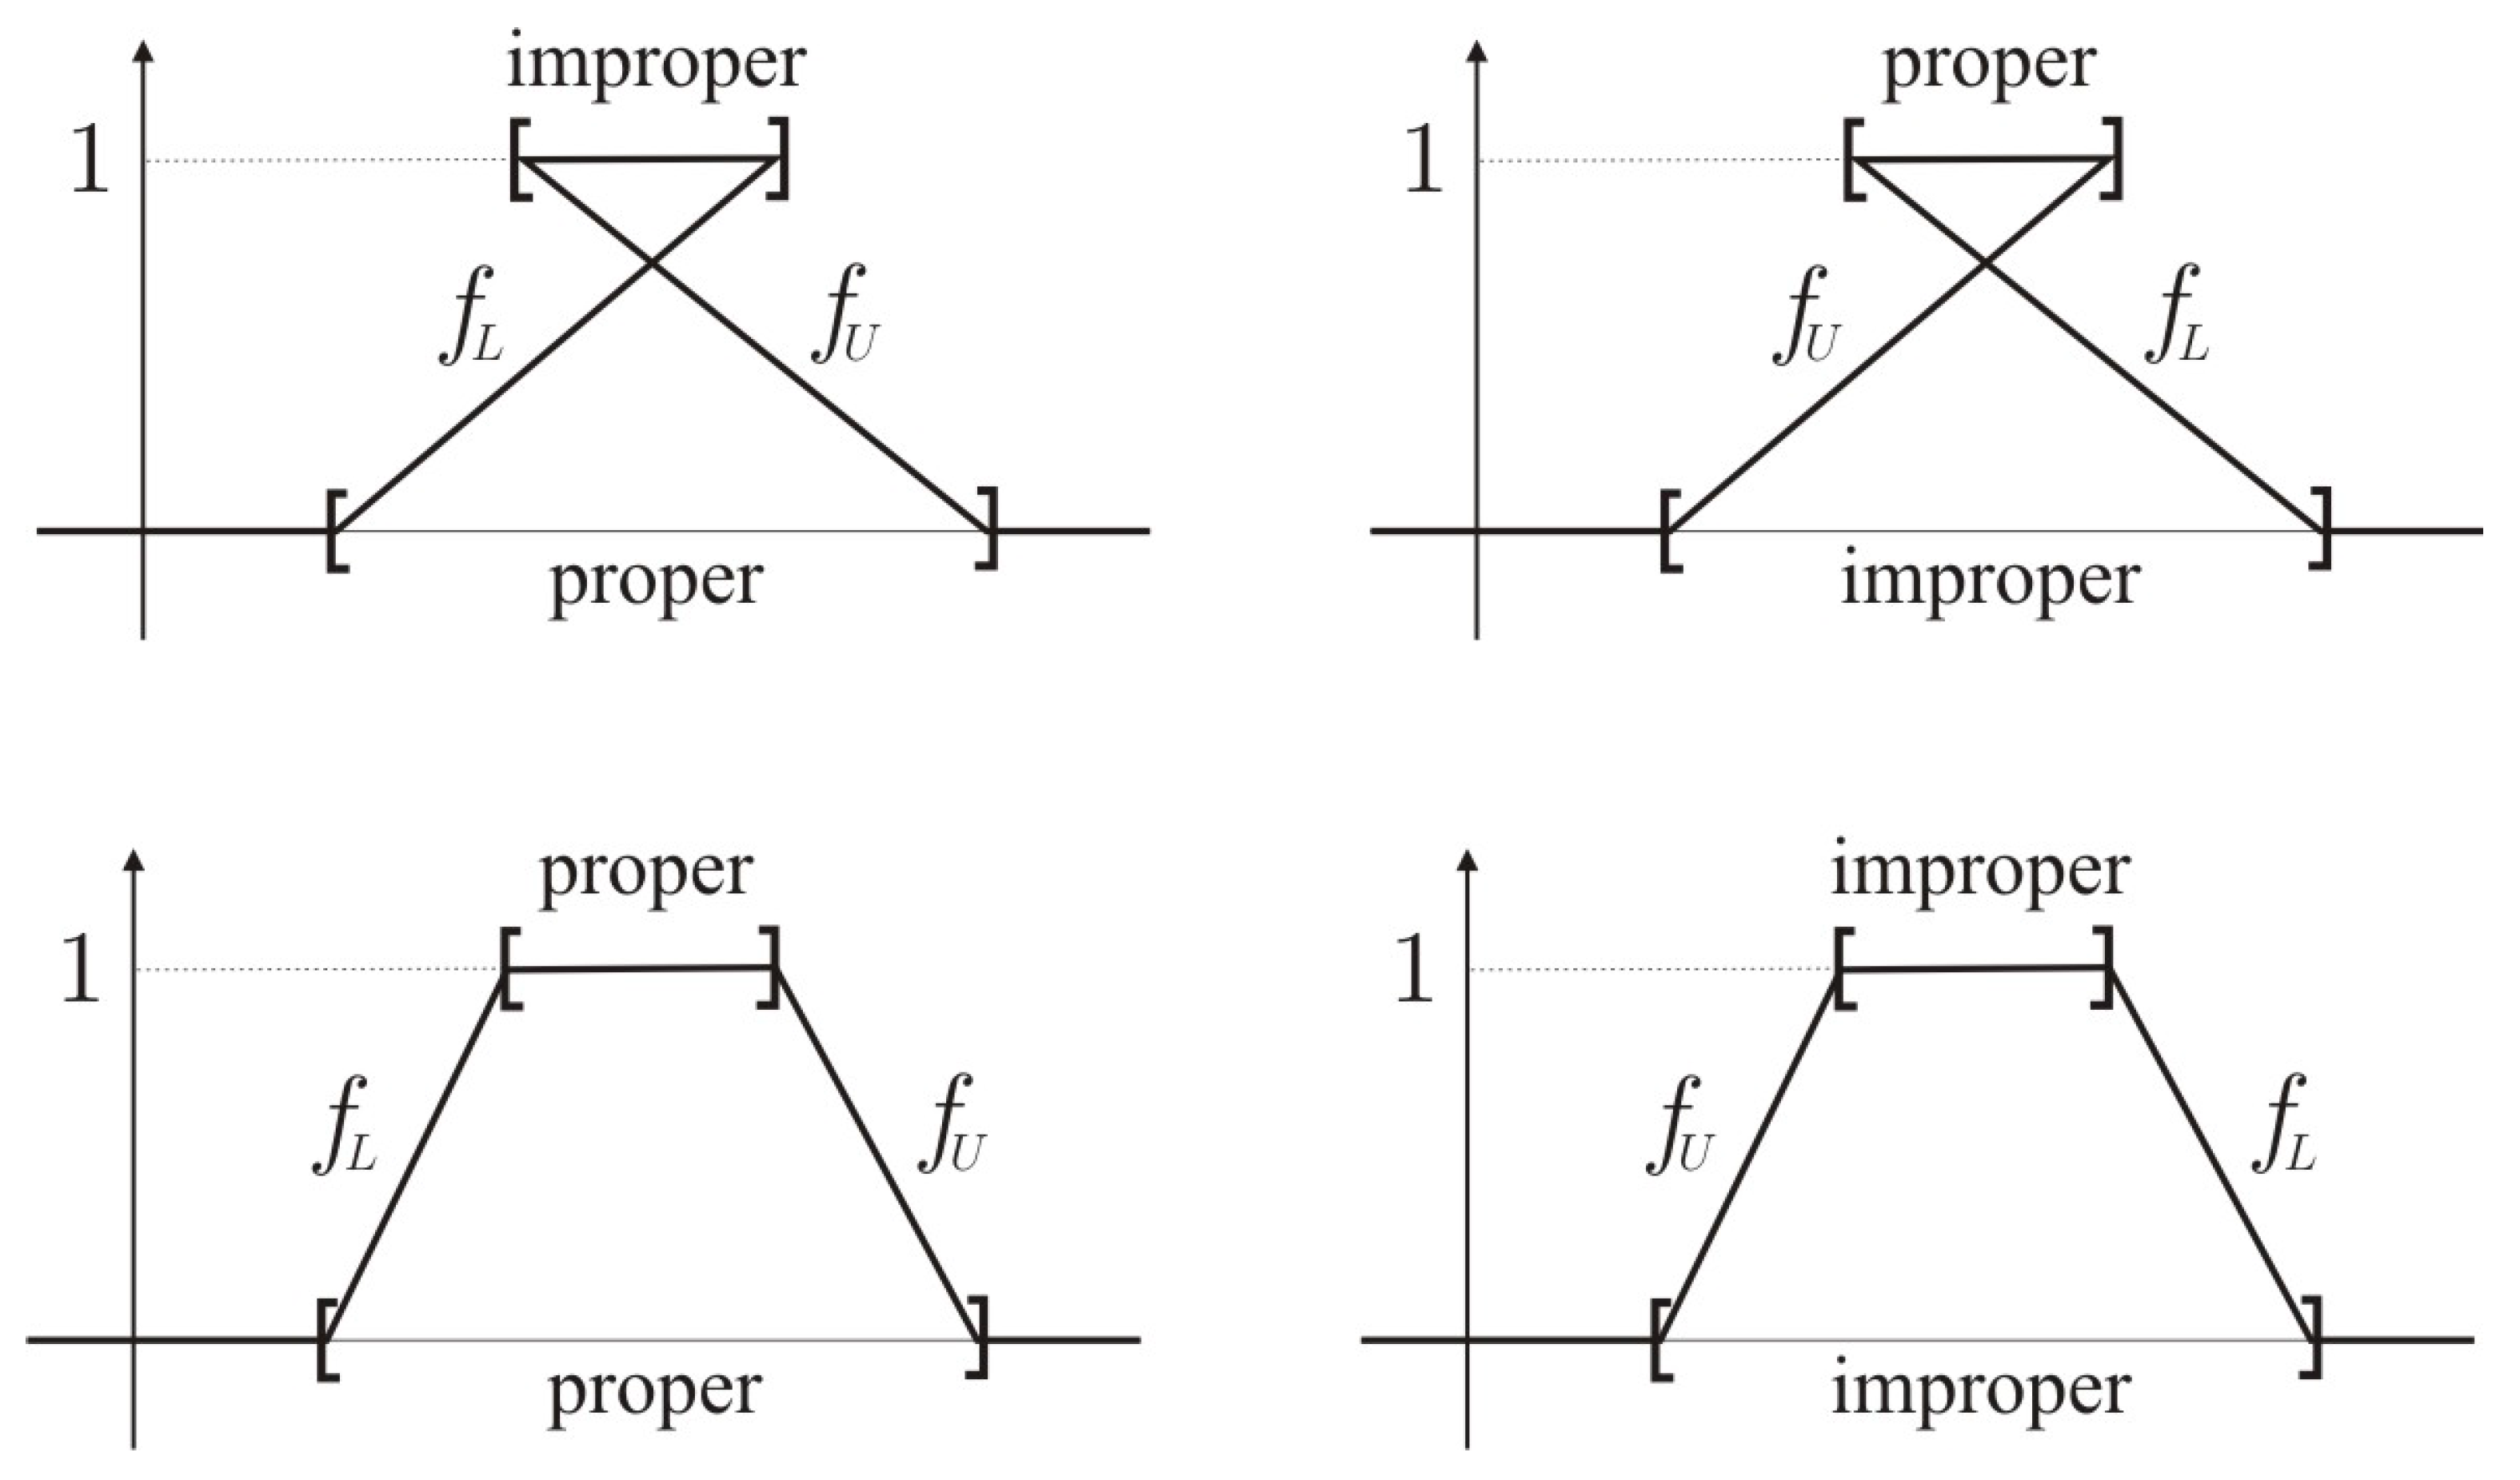 dual trapezoidal fuzzy number and its applications Abstract the purpose of the present paper is to investigate optimality conditions and duality theory in fuzzy number quadratic programming (fnqp) in which the objective function is fuzzy quadratic function with fuzzy number coefficients and the constraint set is fuzzy linear functions with fuzzy number coefficients.